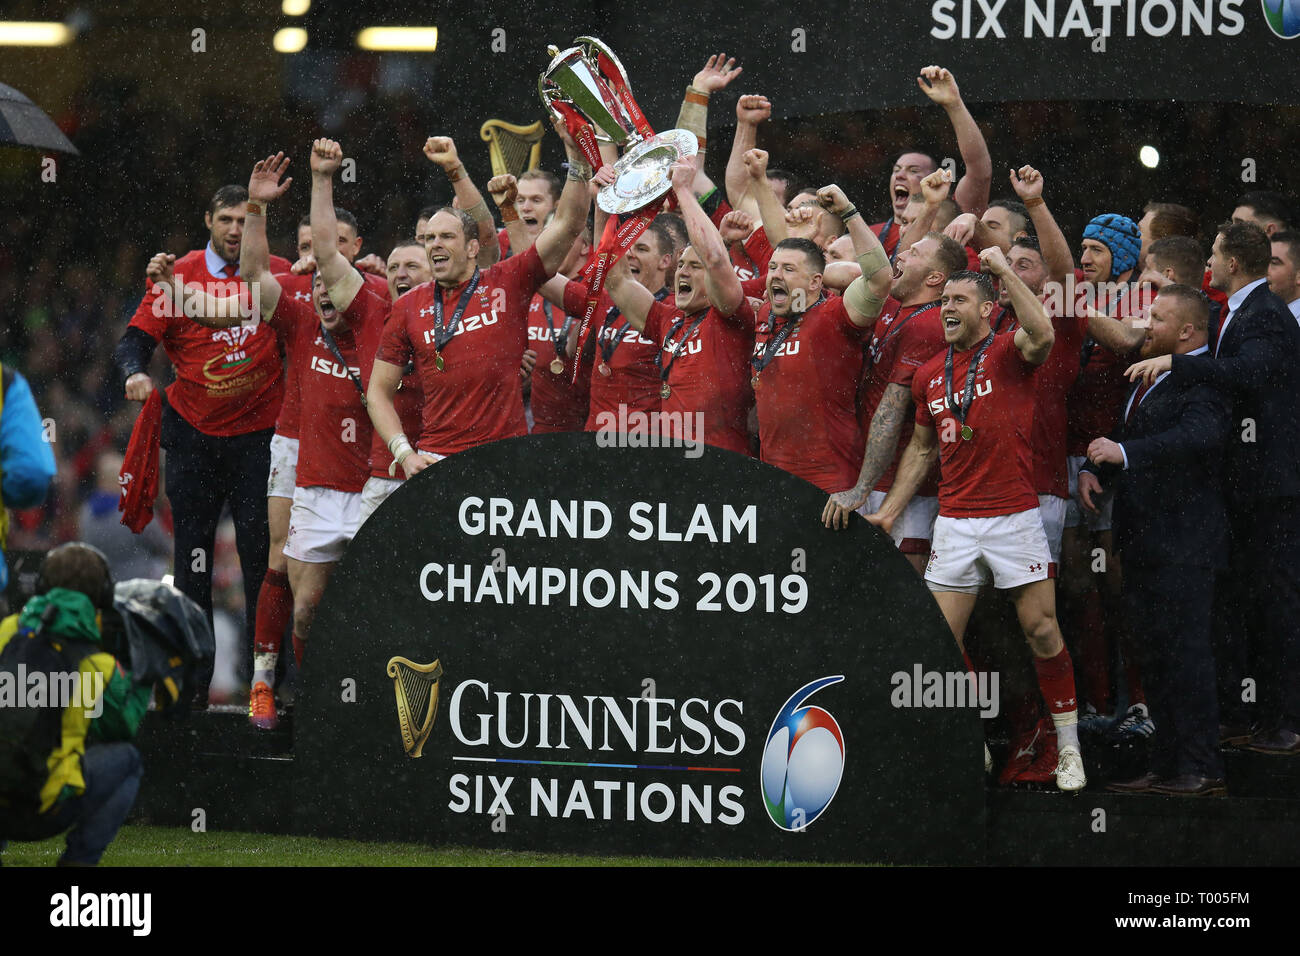 Cardiff, UK. 16th March 2019. Wales players lift the trophy's and celebrate winning the Grand Slam and Guinness six nations championship.  Wales v Ireland , Guinness Six Nations 2019 international rugby match at the Principality Stadium in Cardiff ,Wales , UK on Saturday 16th March 2019.   pic by Andrew Orchard/Alamy Live News  PLEASE NOTE PICTURE AVAILABLE FOR EDITORIAL USE ONLY Credit: Andrew Orchard sports photography/Alamy Live News - Stock Image